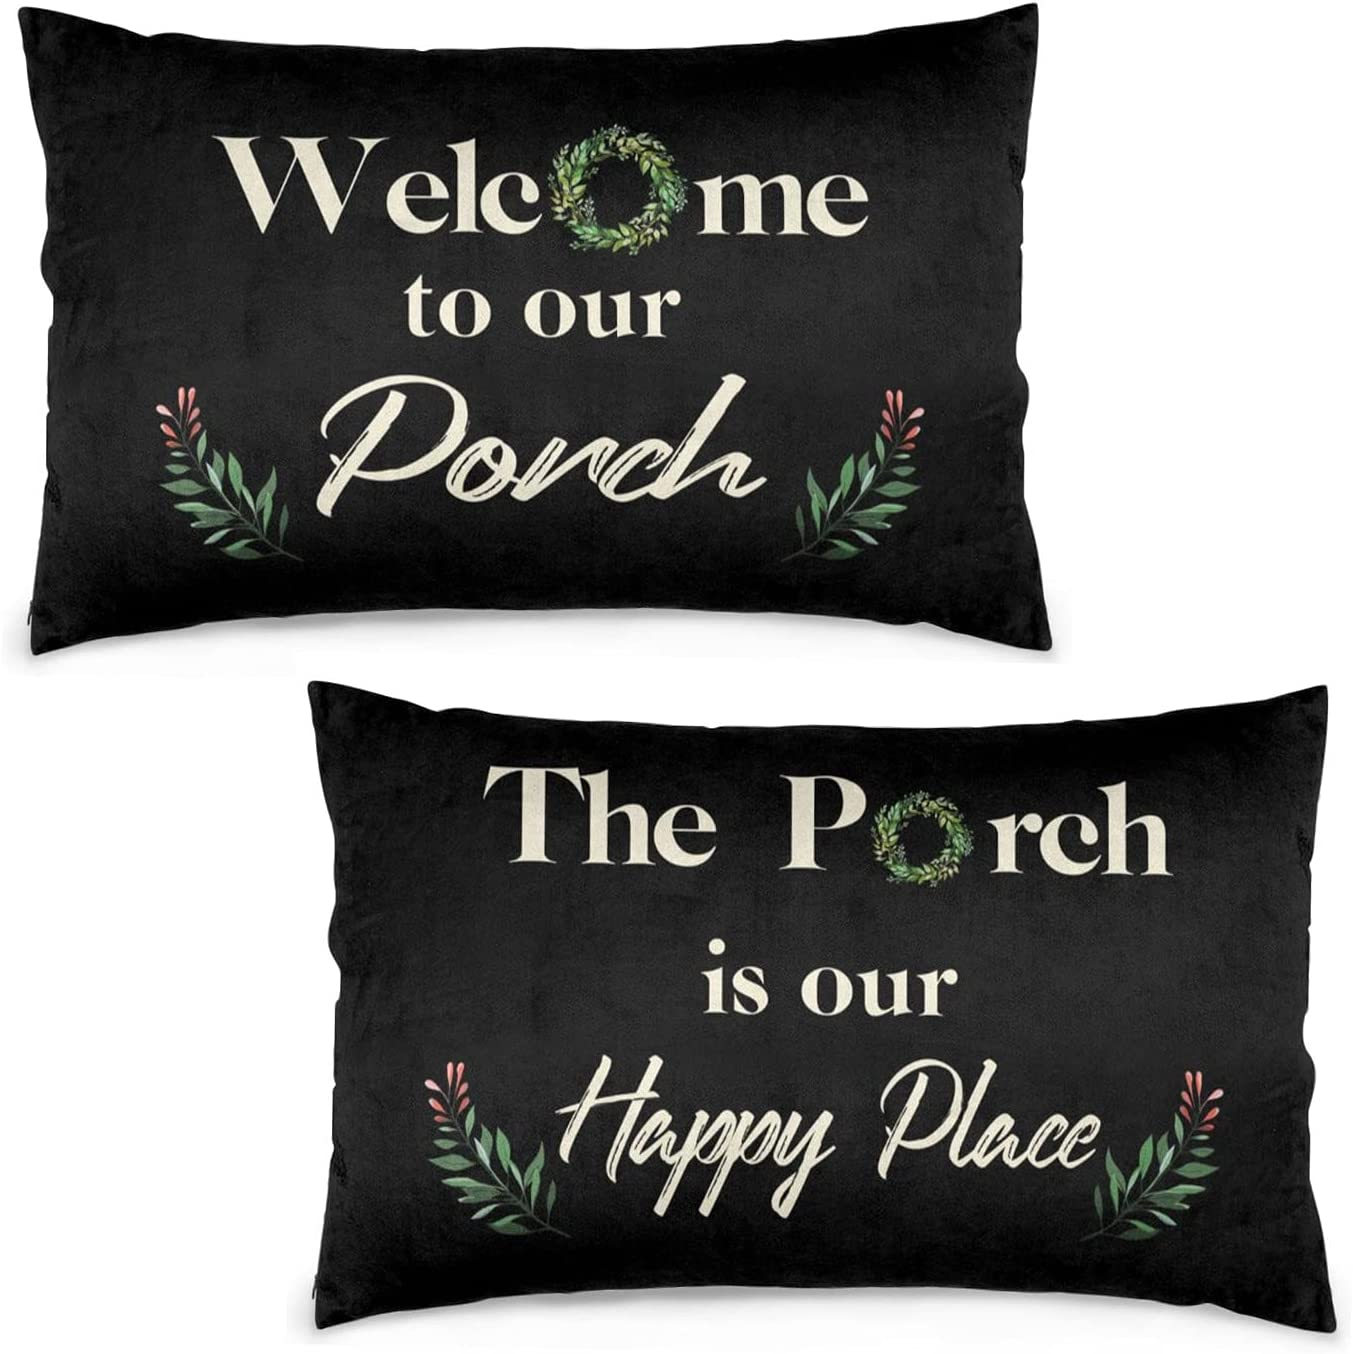 DZGlobal Welcome to Our Porch Pillow Covers 12x20 Set of 2 Our Happy Place Pillow Cases Black Outdoor Lumbar Pillow Covers for Front Porch Decor Farmhouse Patio Furniture